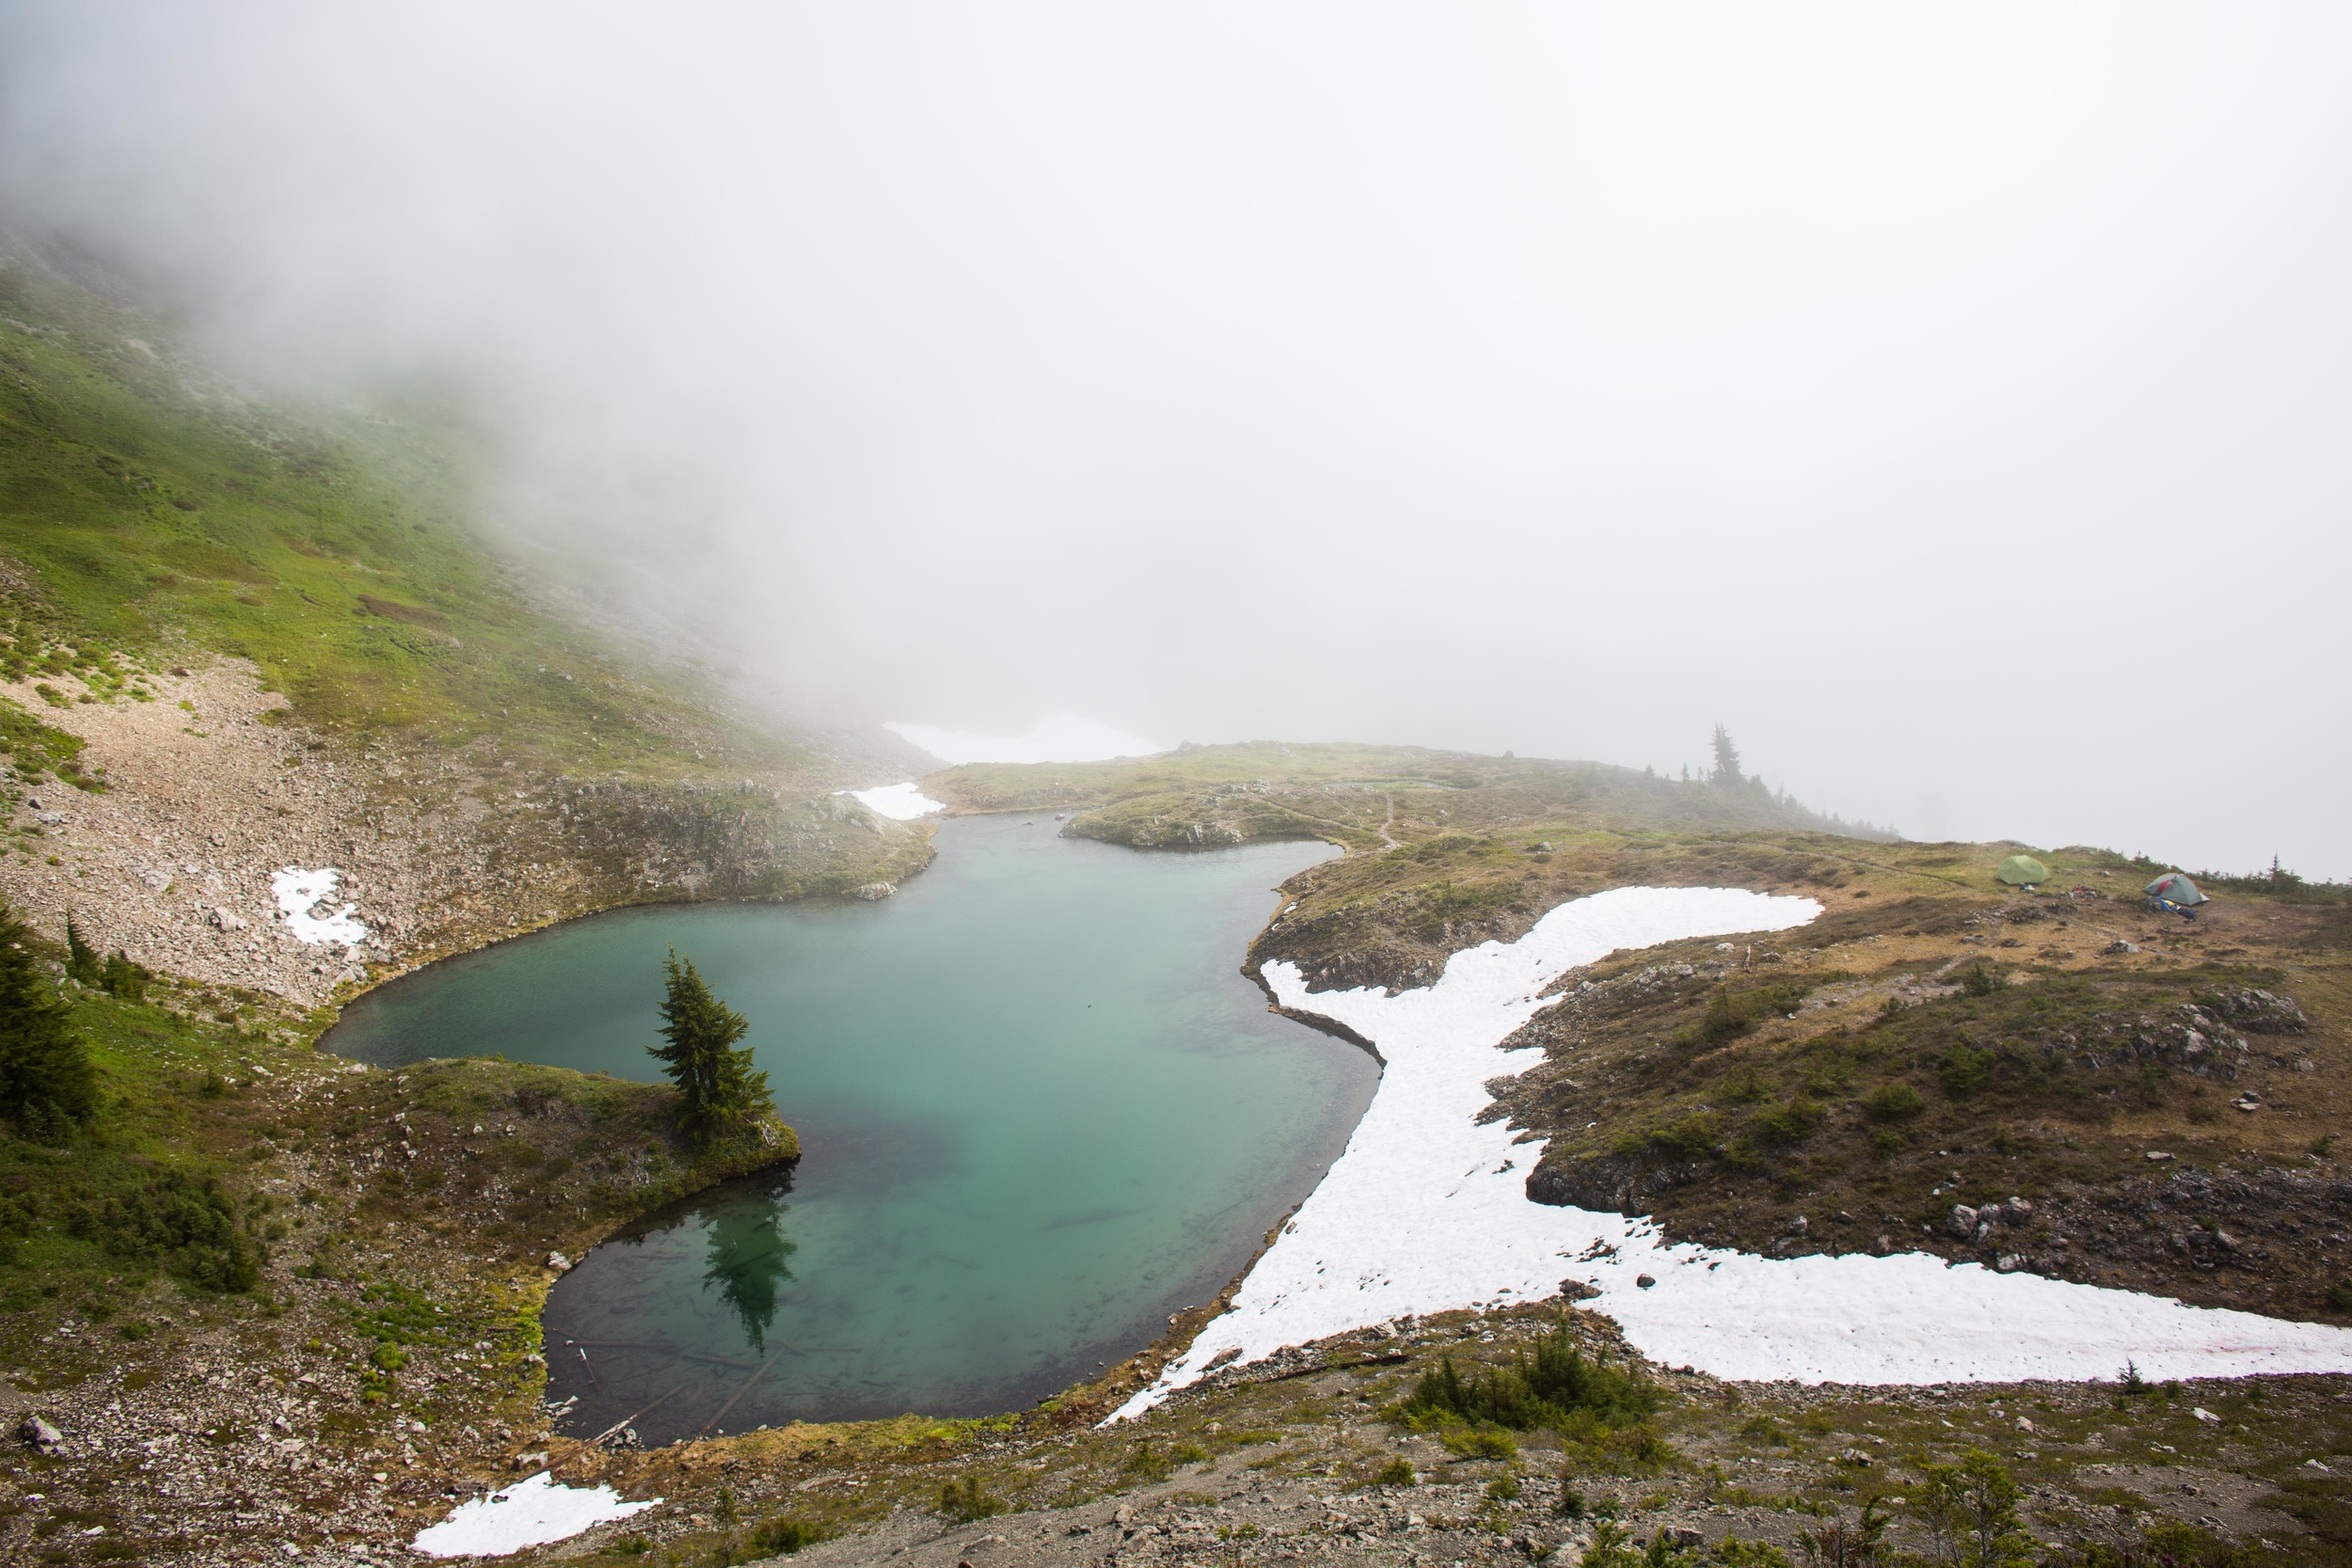 Swimming Bear Lake. Cat Basin drops steeply down beyond the fog, with mountains in the background, but they were hiding most of the time.